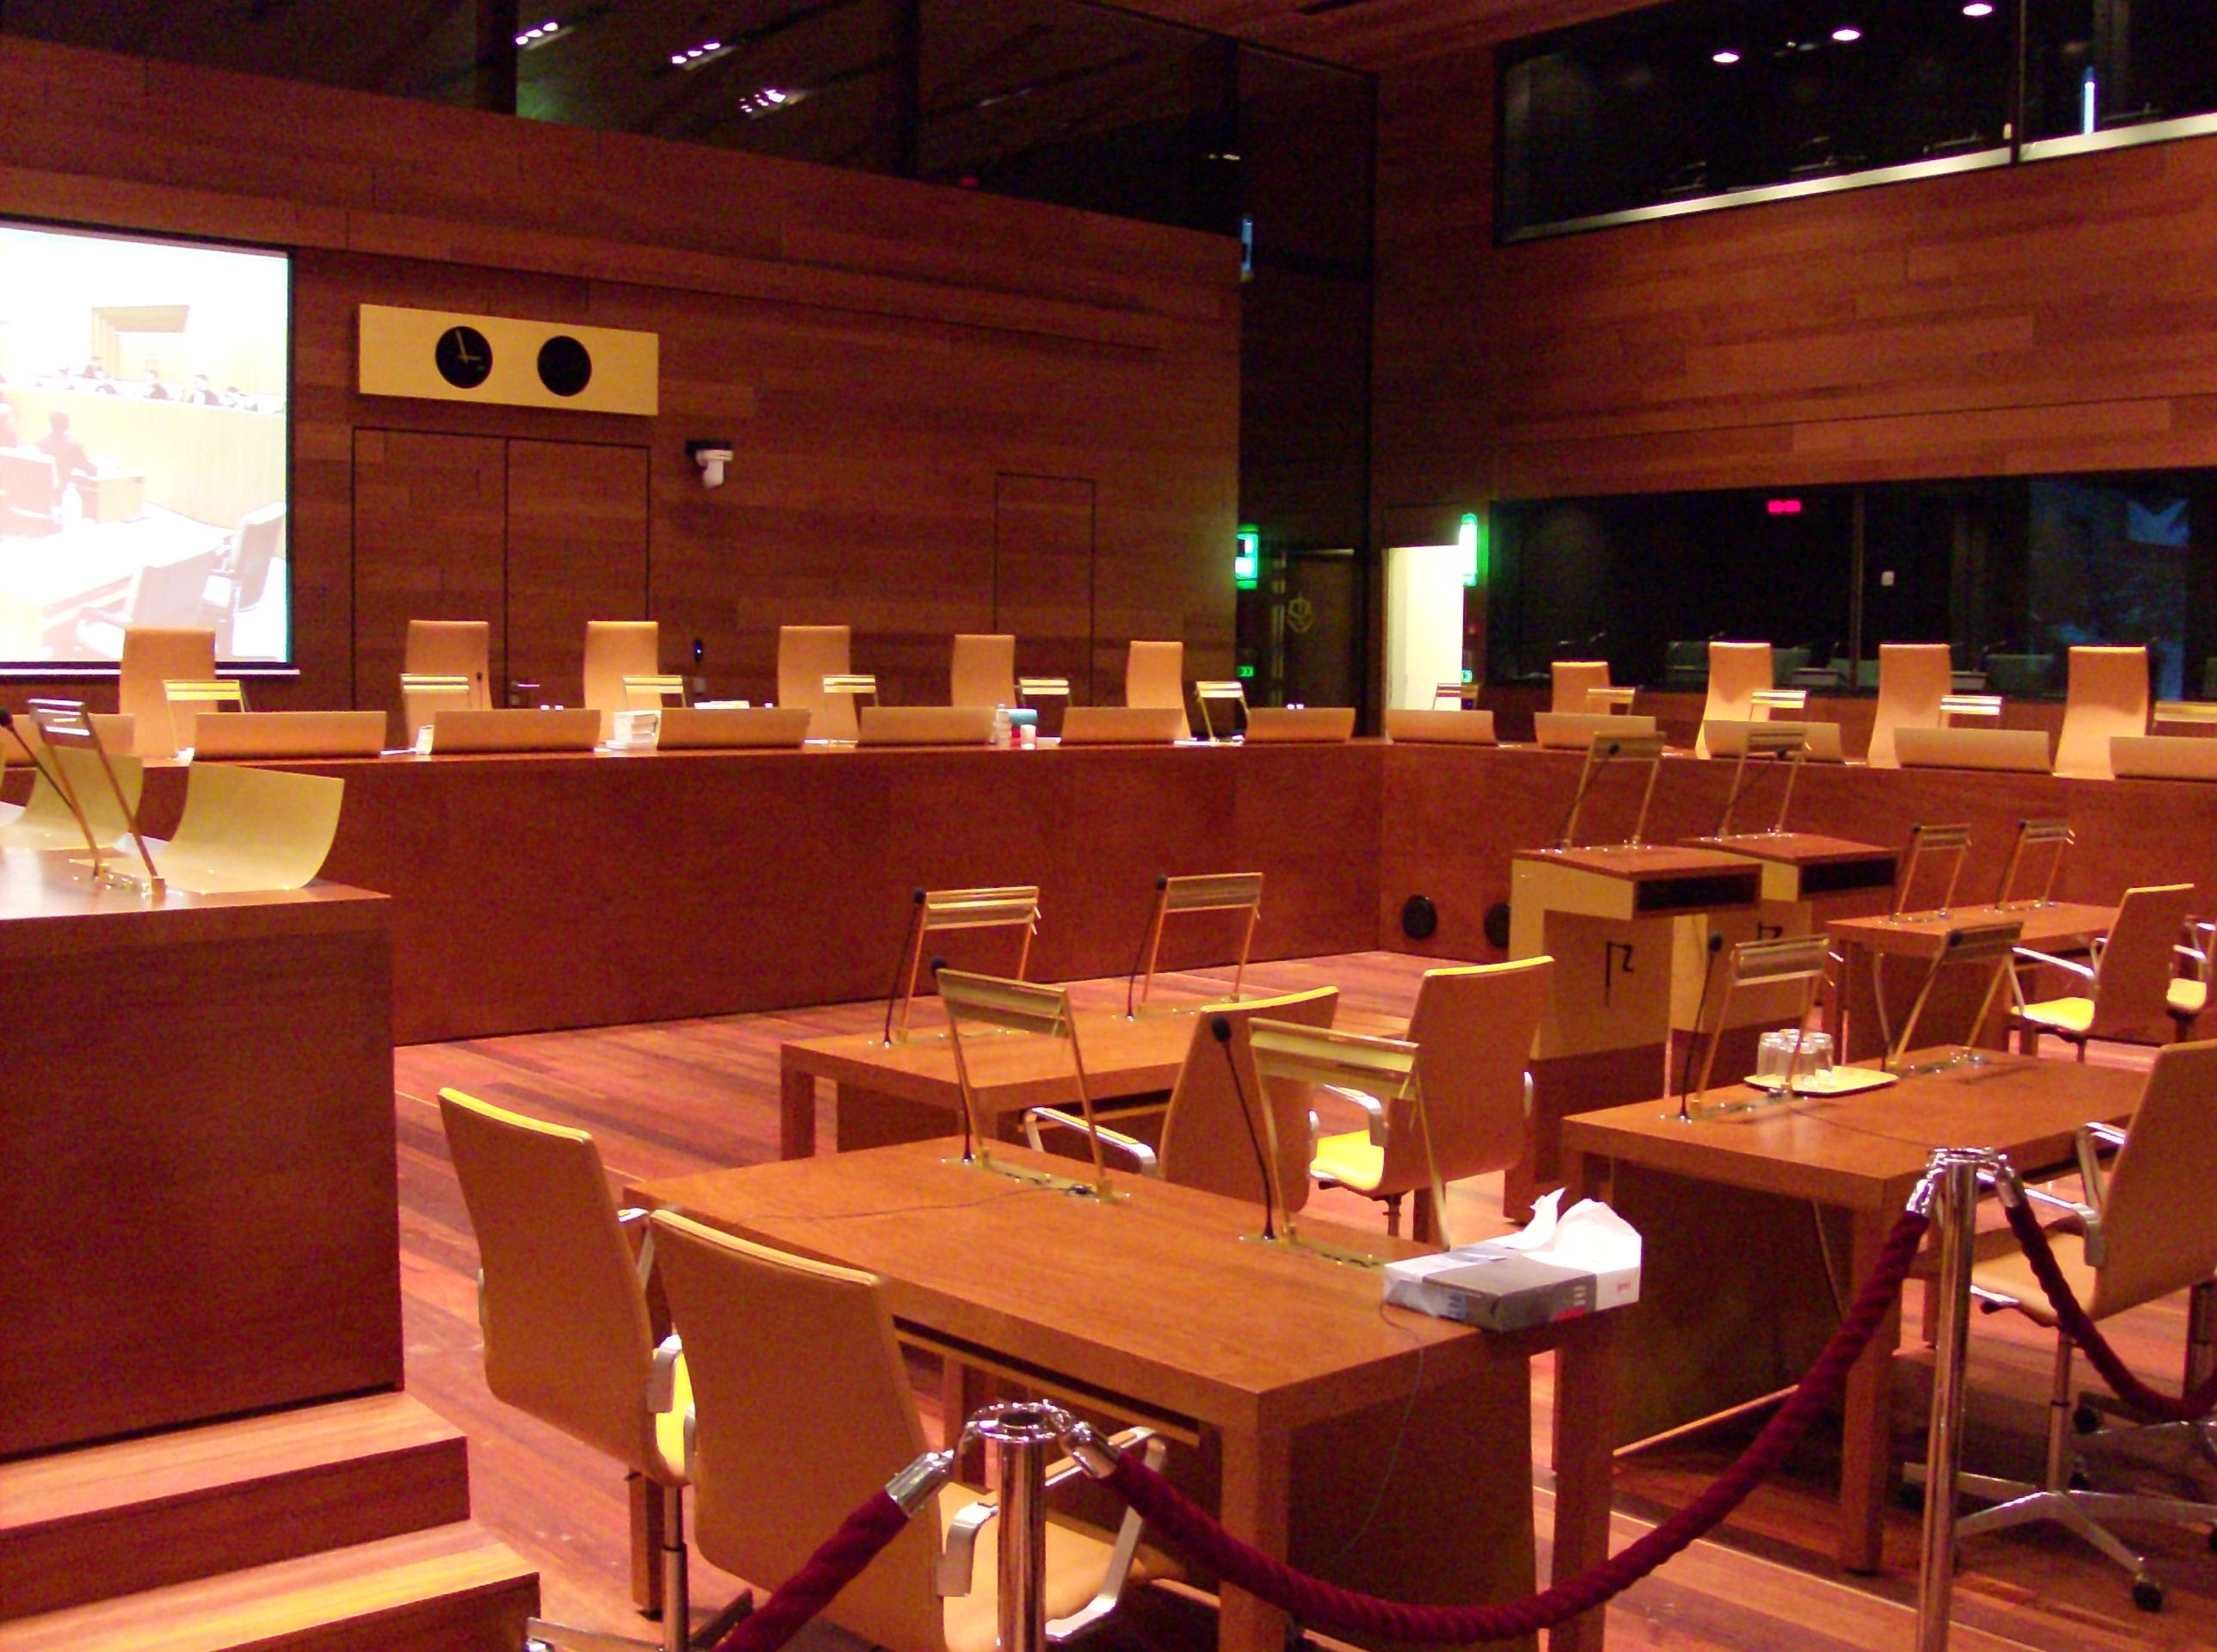 Leniency trumps damage claims in access to cartel documents, European court says